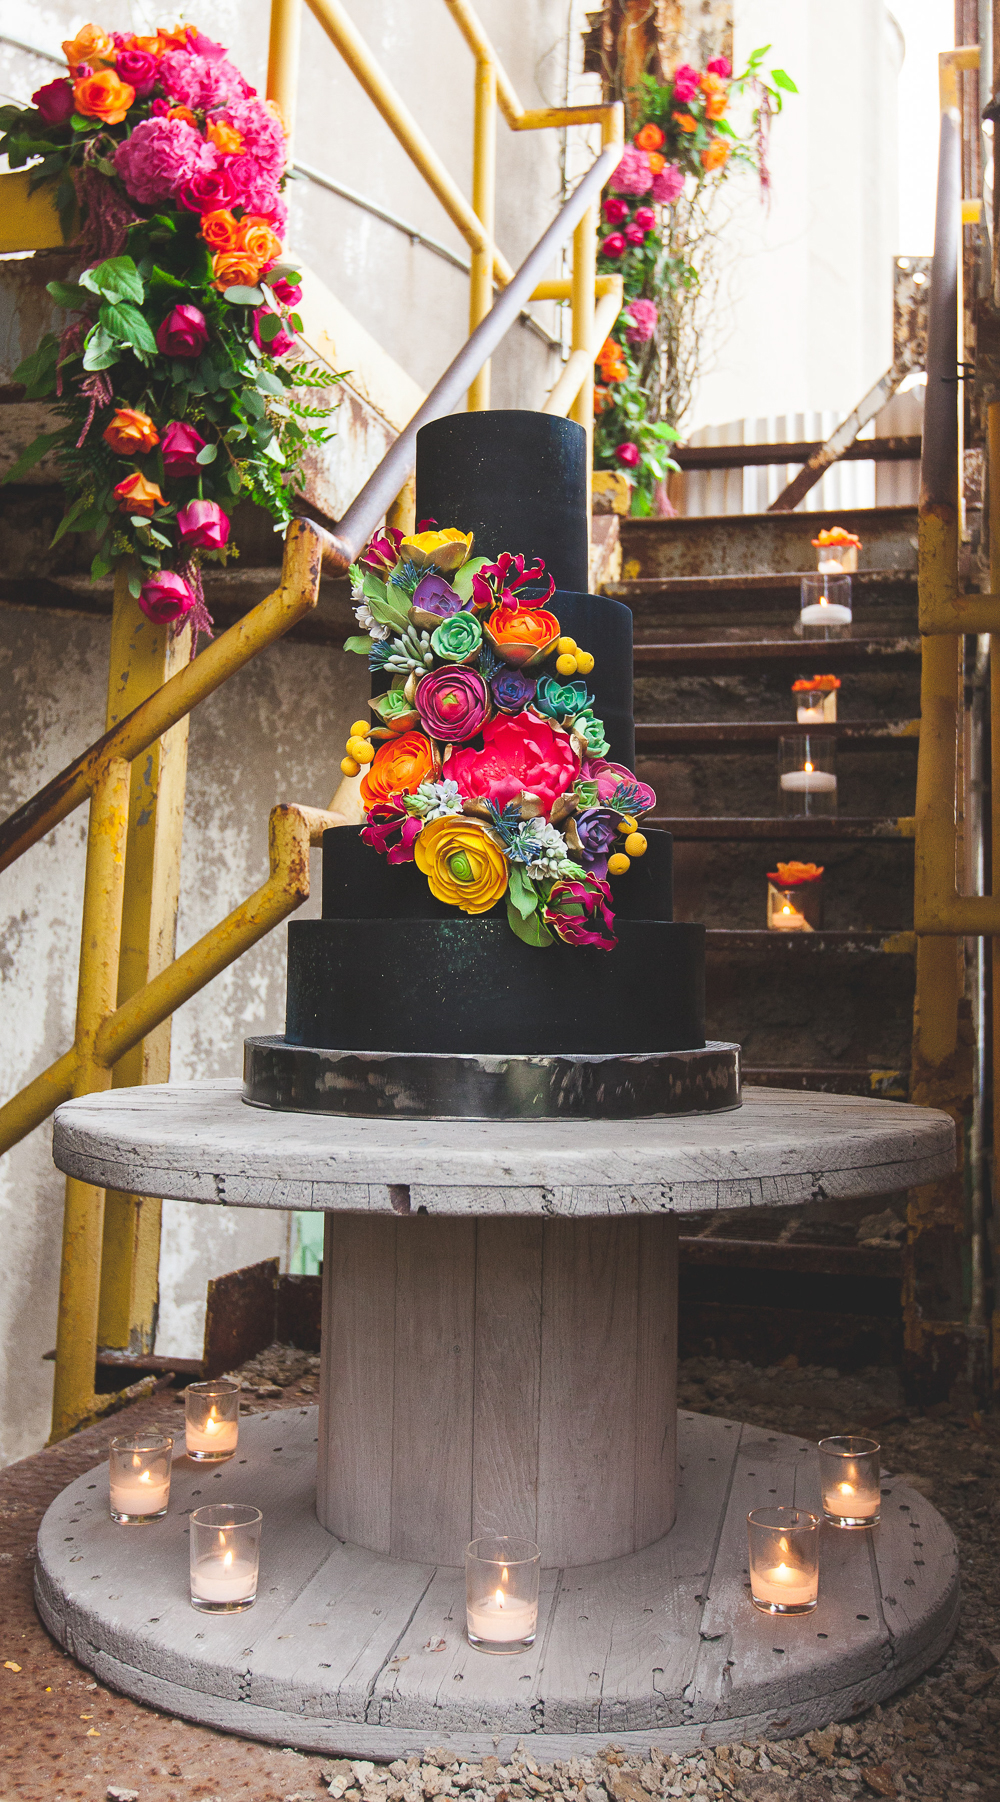 blackbean-photography-miracle-twenty-one-urban-wedding-shoot-urban-gypsy-couture-colourful-wedding-shoot-23